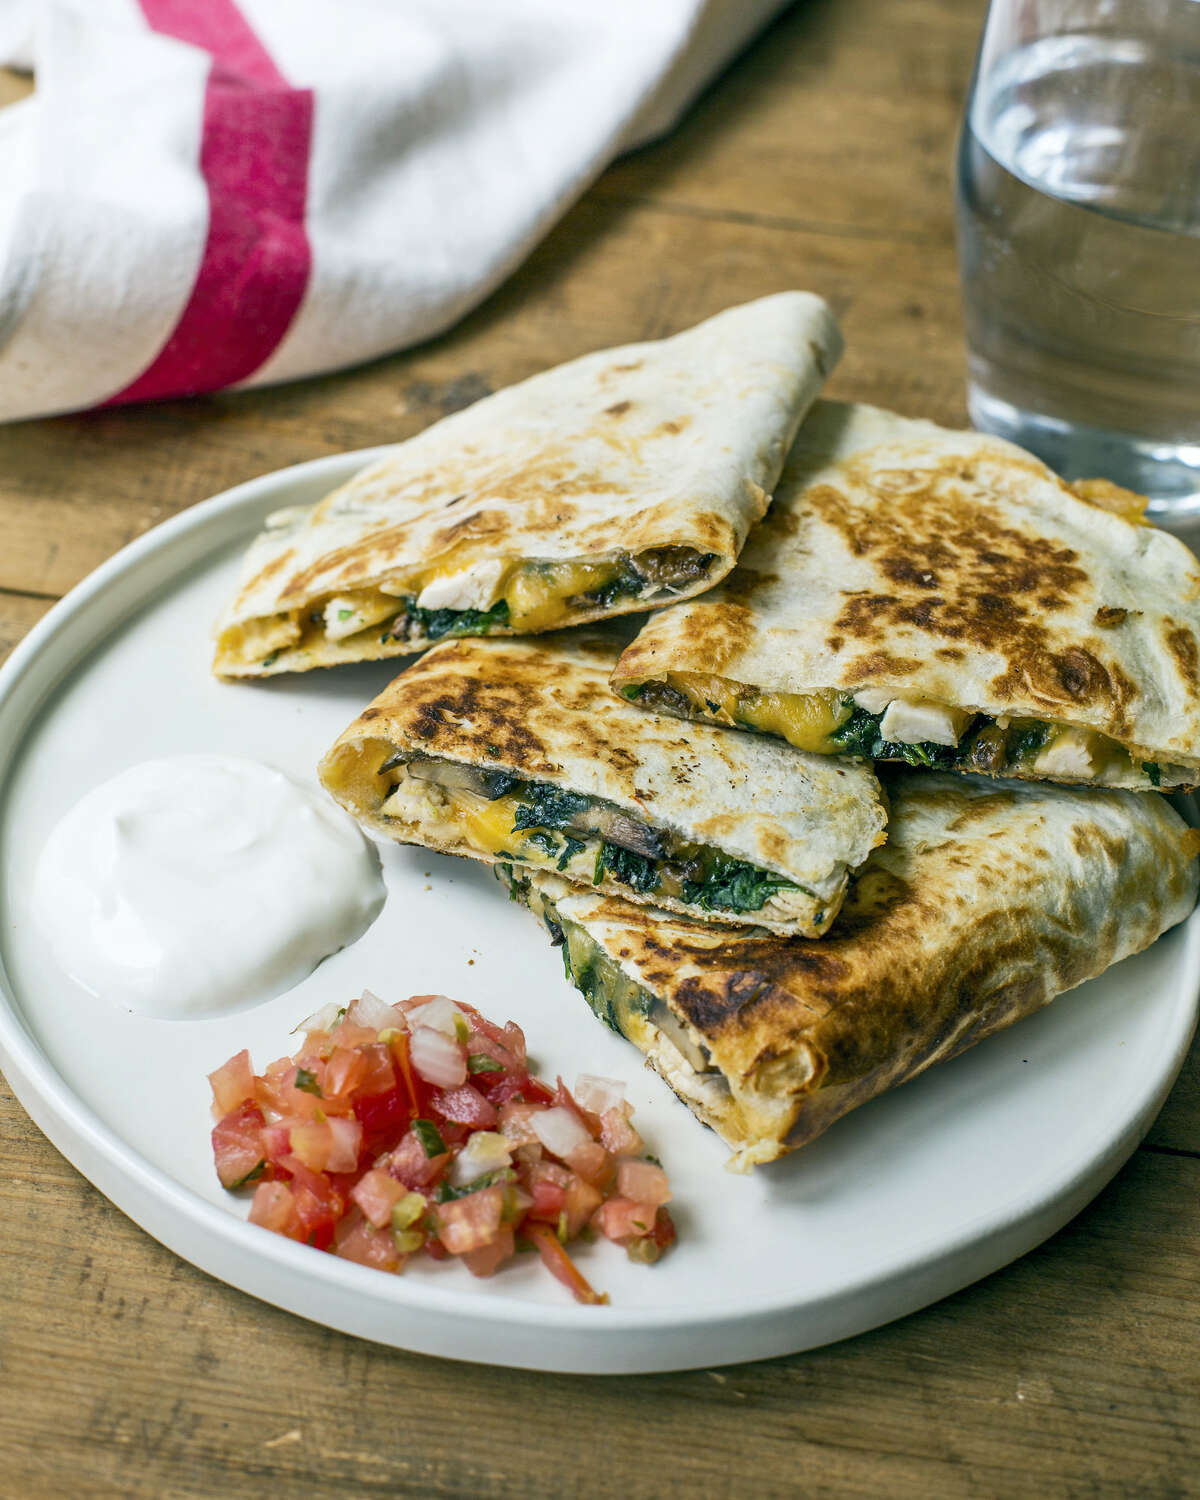 Spinach, mushroom and chicken quesadillas are a great idea for the pre-trick-or-treat rush.